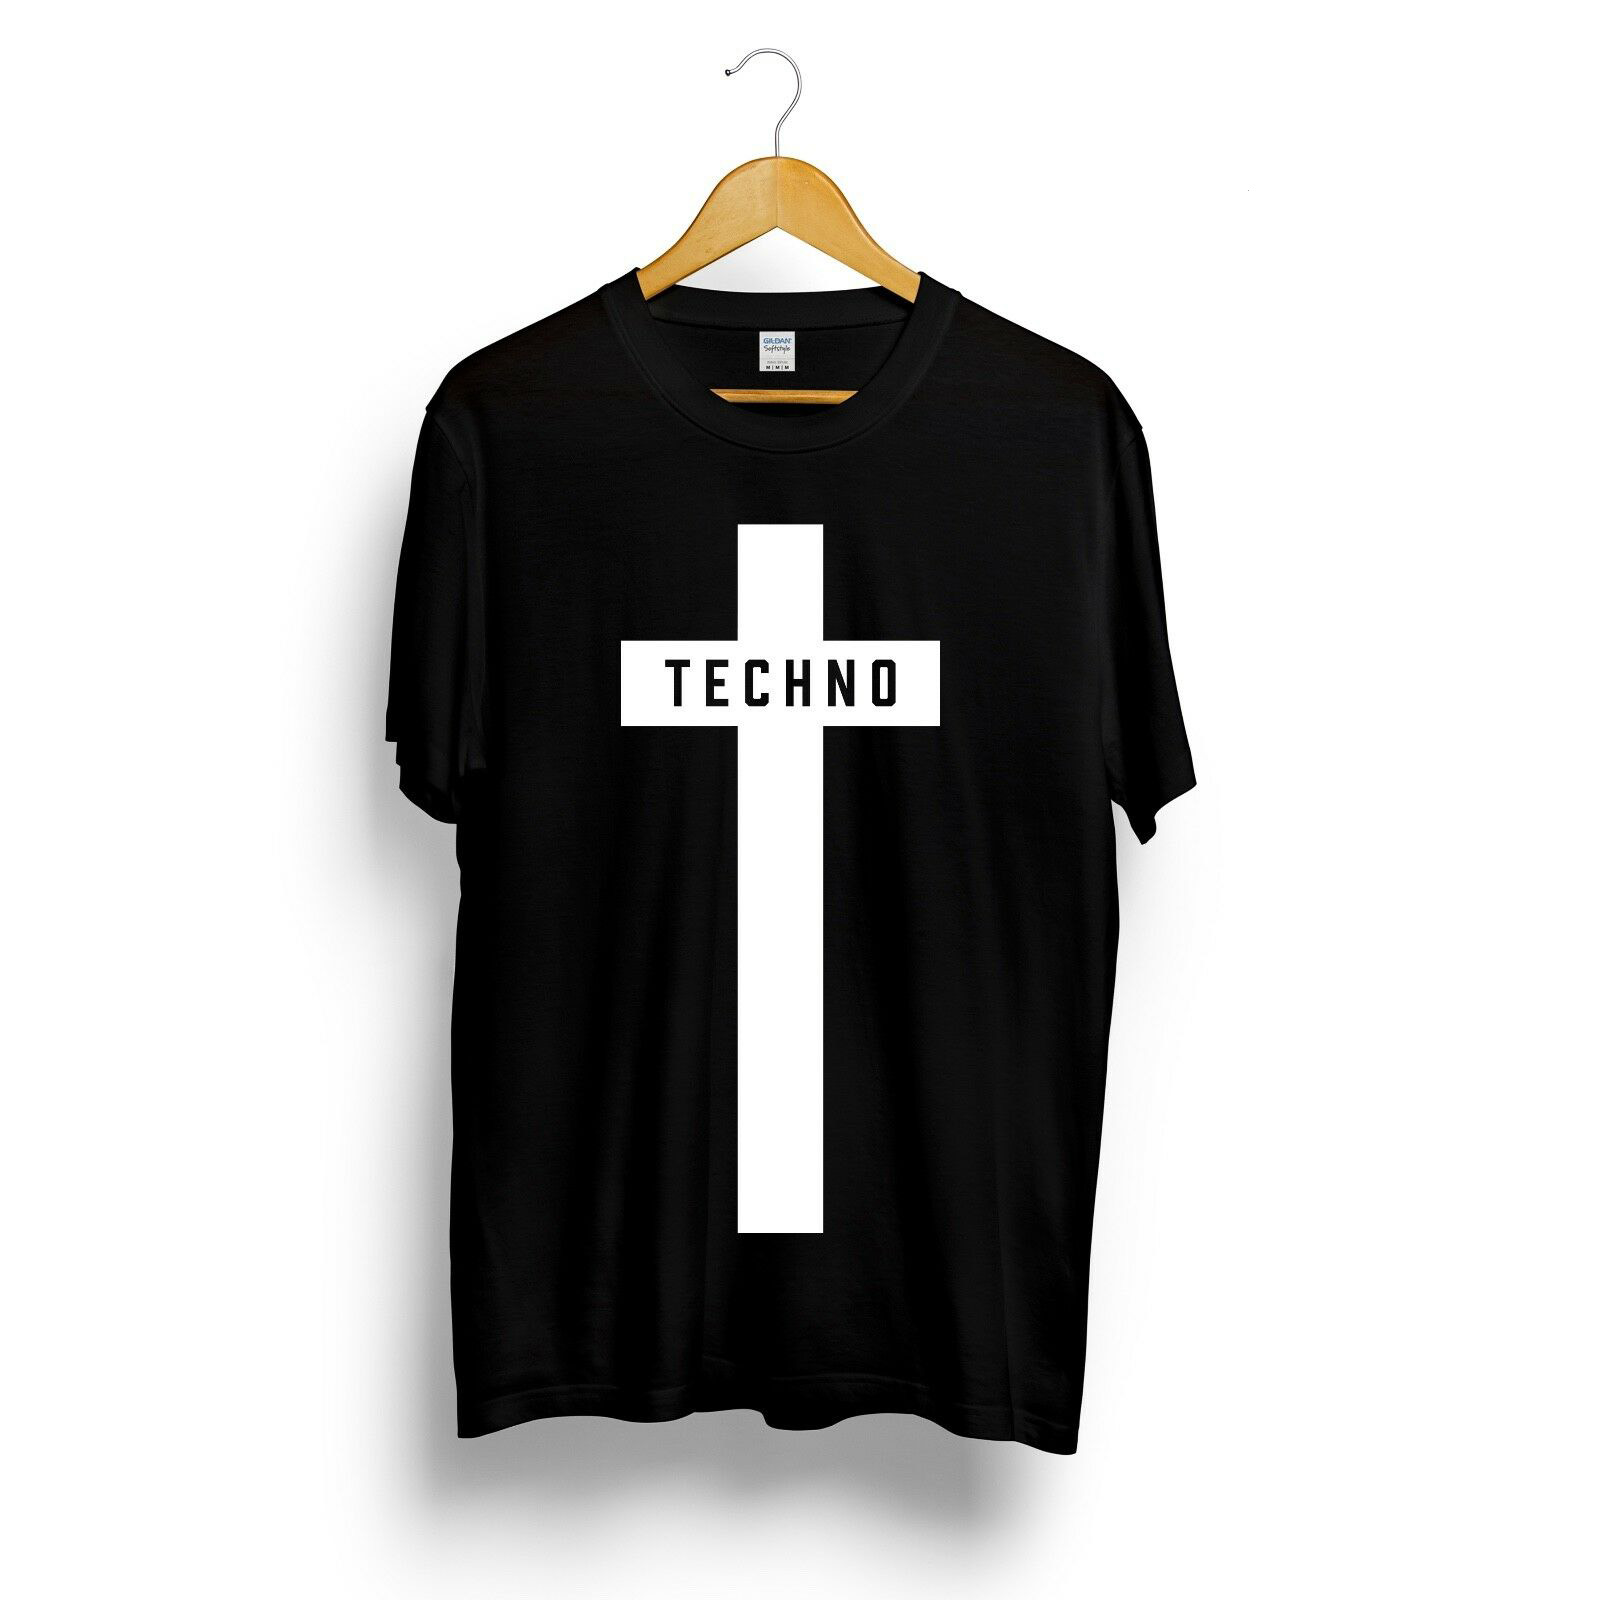 Techno Cross Printed T-shirt Mens Womens Unisex Music Festival Black Detroit Tee Top Summer Streetwear Camiseta Masculina